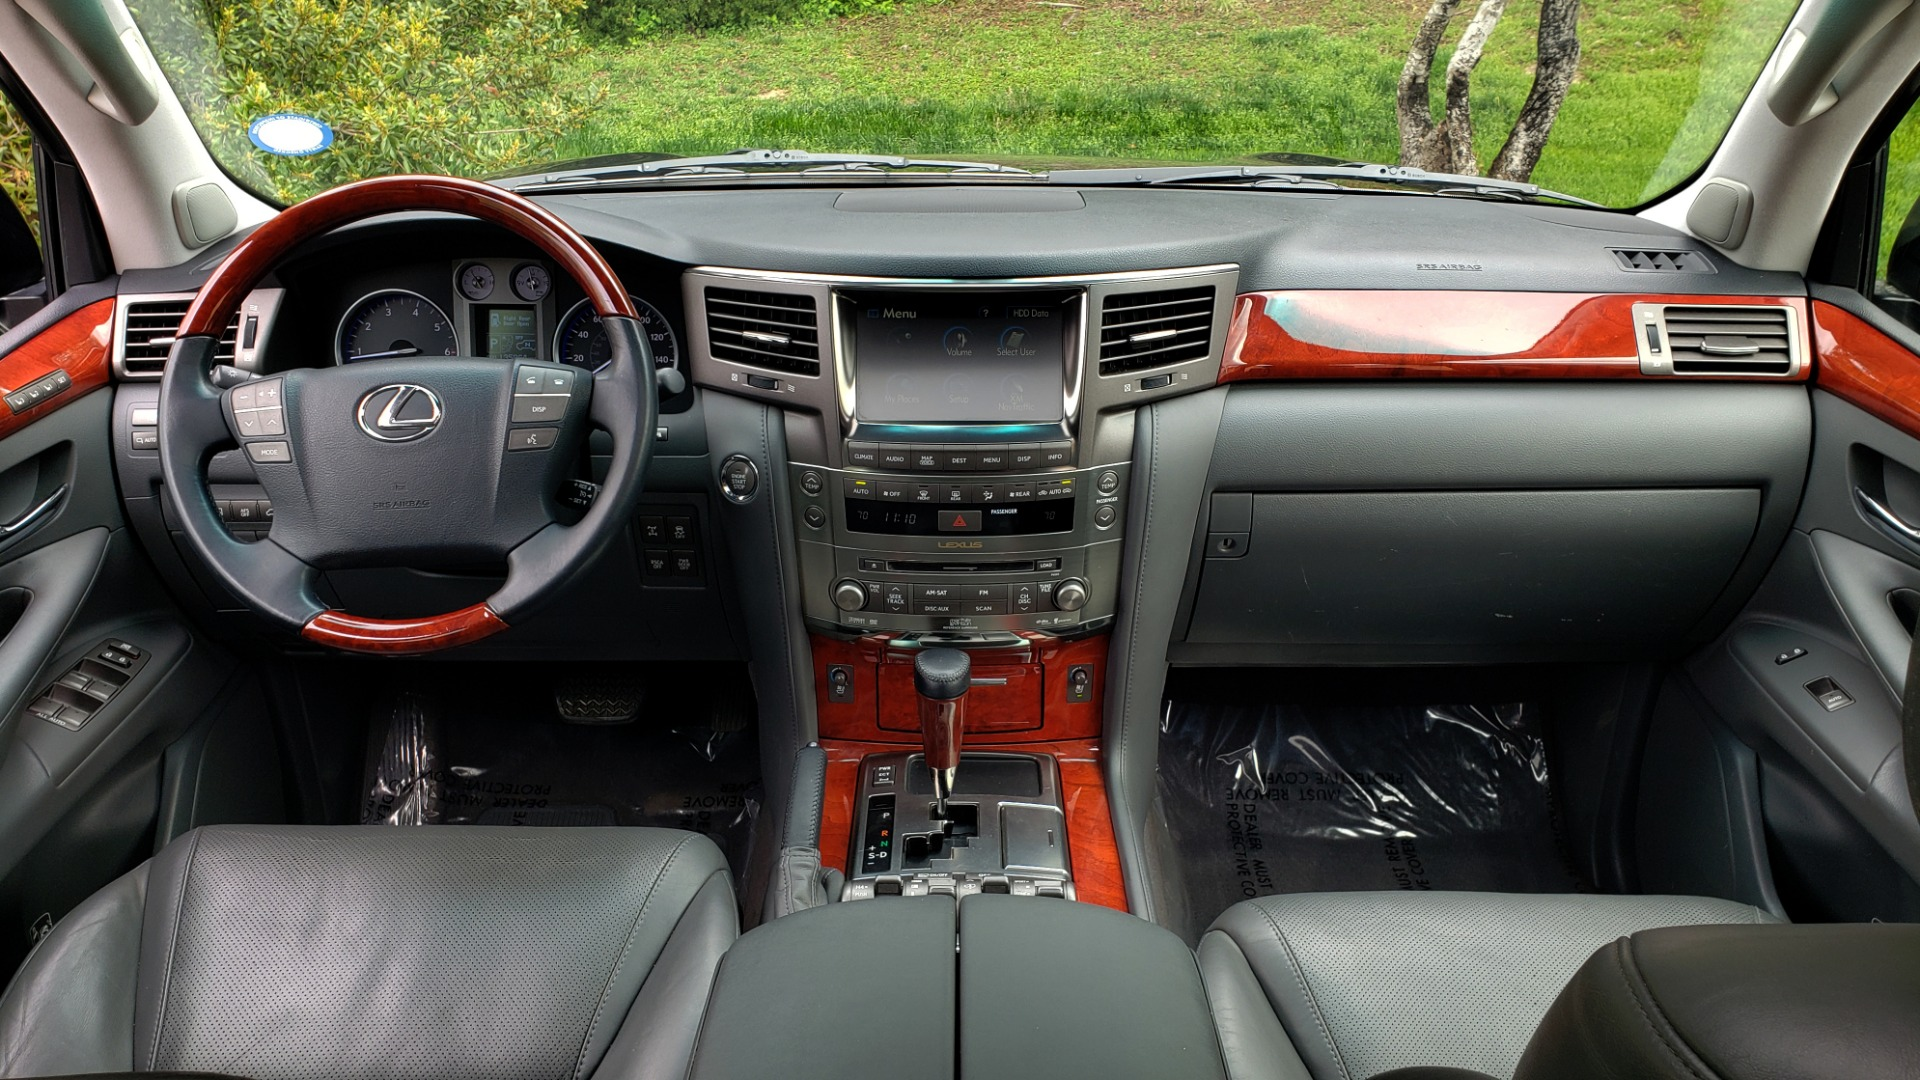 Used 2008 Lexus LX 570 4WD / TECH PKG / NAV / SUNROOF / MARK LEVINSON / PARK ASST for sale $22,995 at Formula Imports in Charlotte NC 28227 82